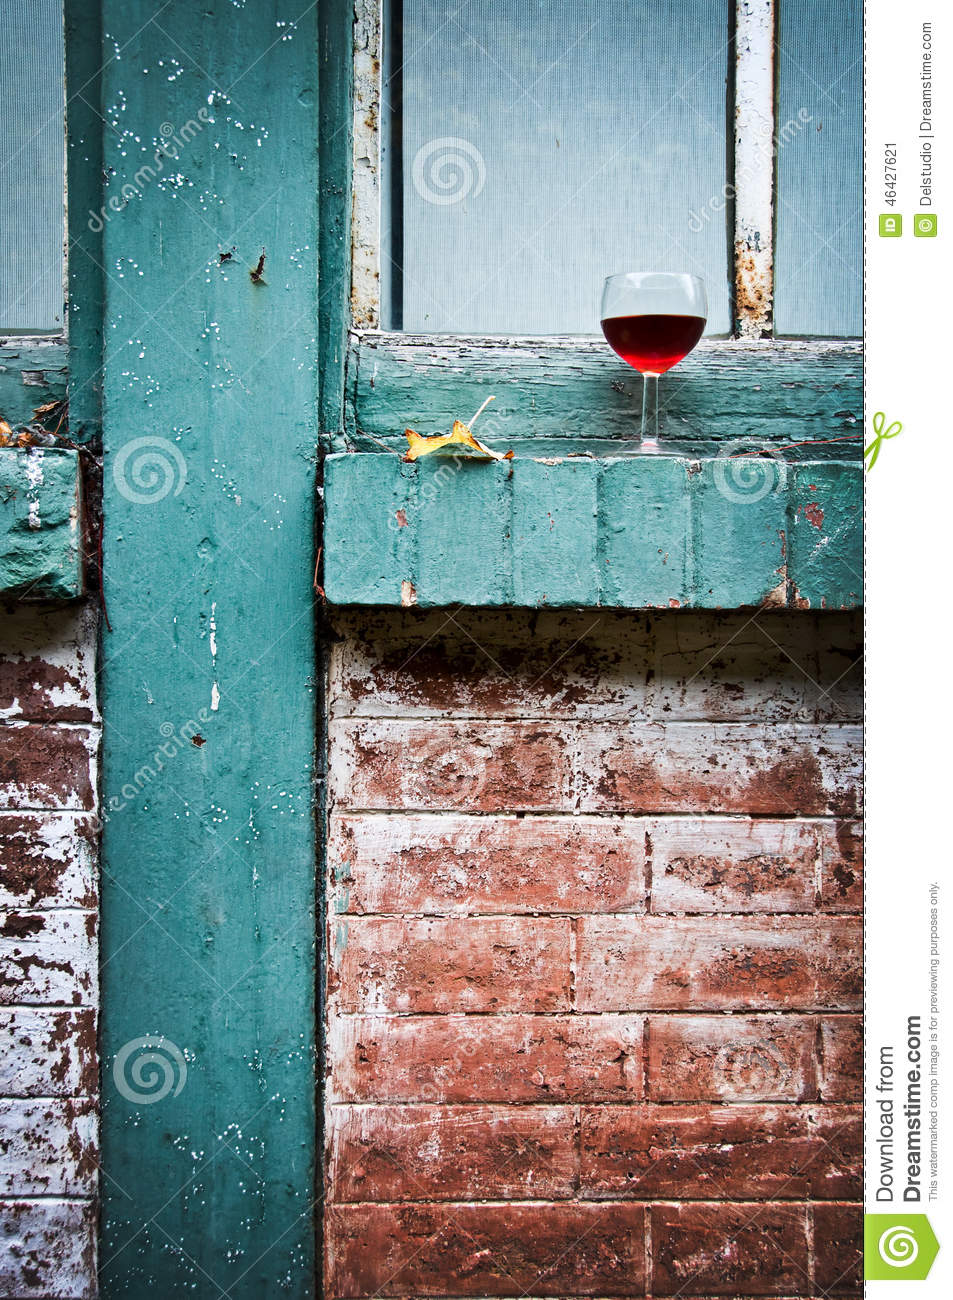 Verre de vin rouge fran ais pr s d 39 une fen tre photo stock for Verre de fenetre